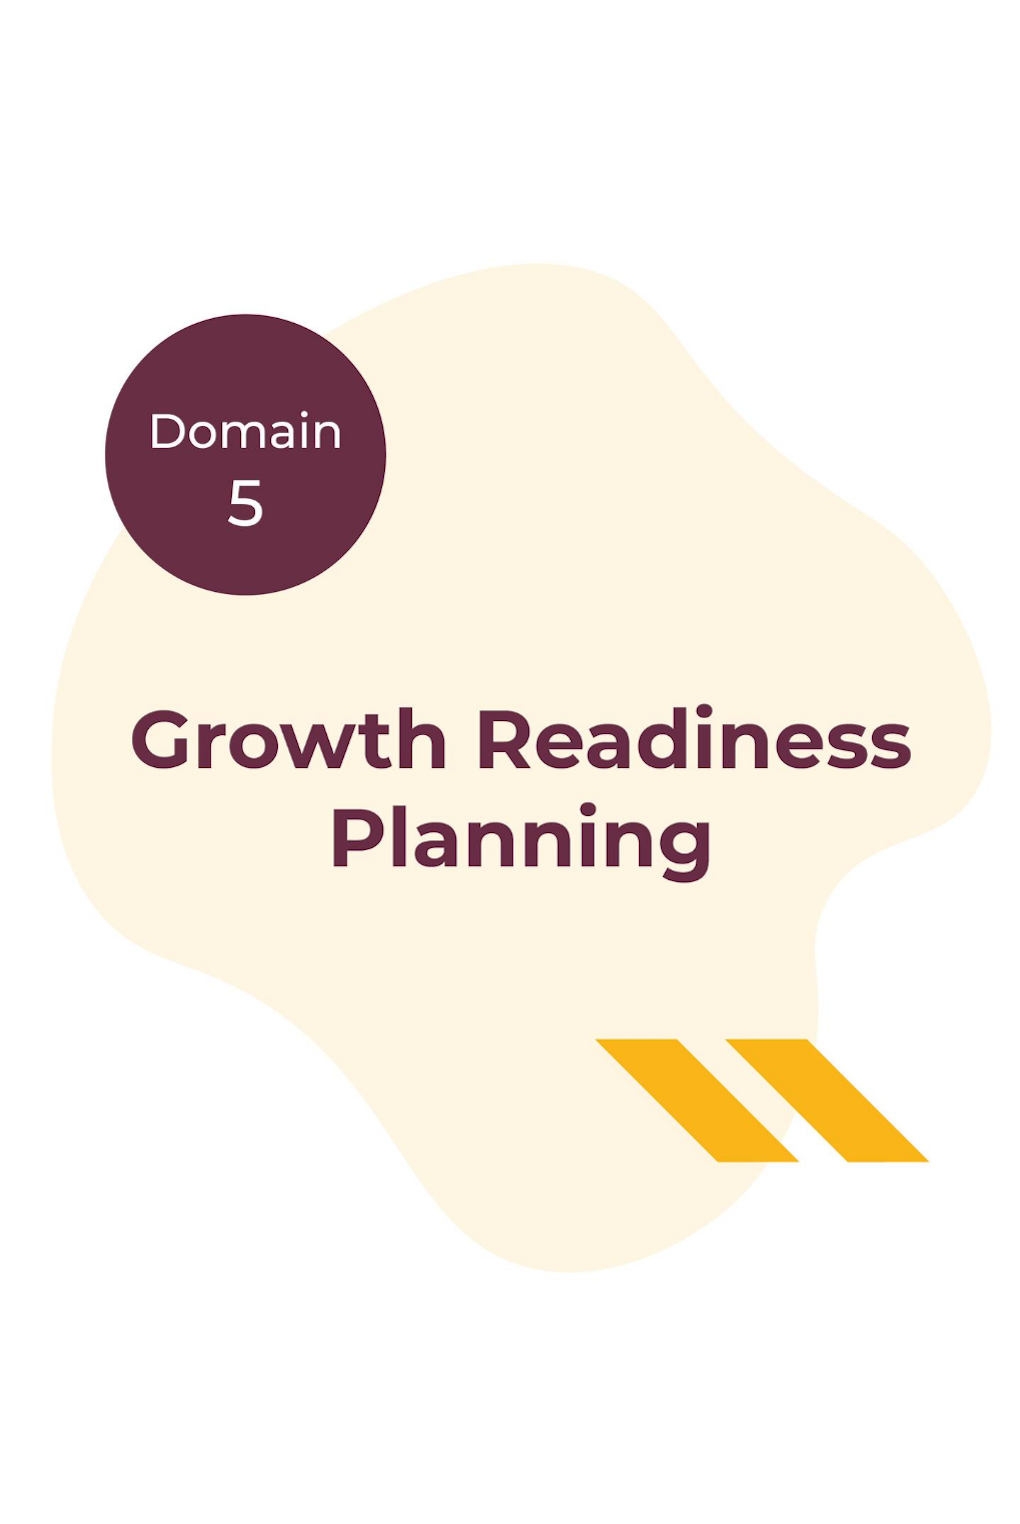 Domain 5 - Growth Readiness Planning